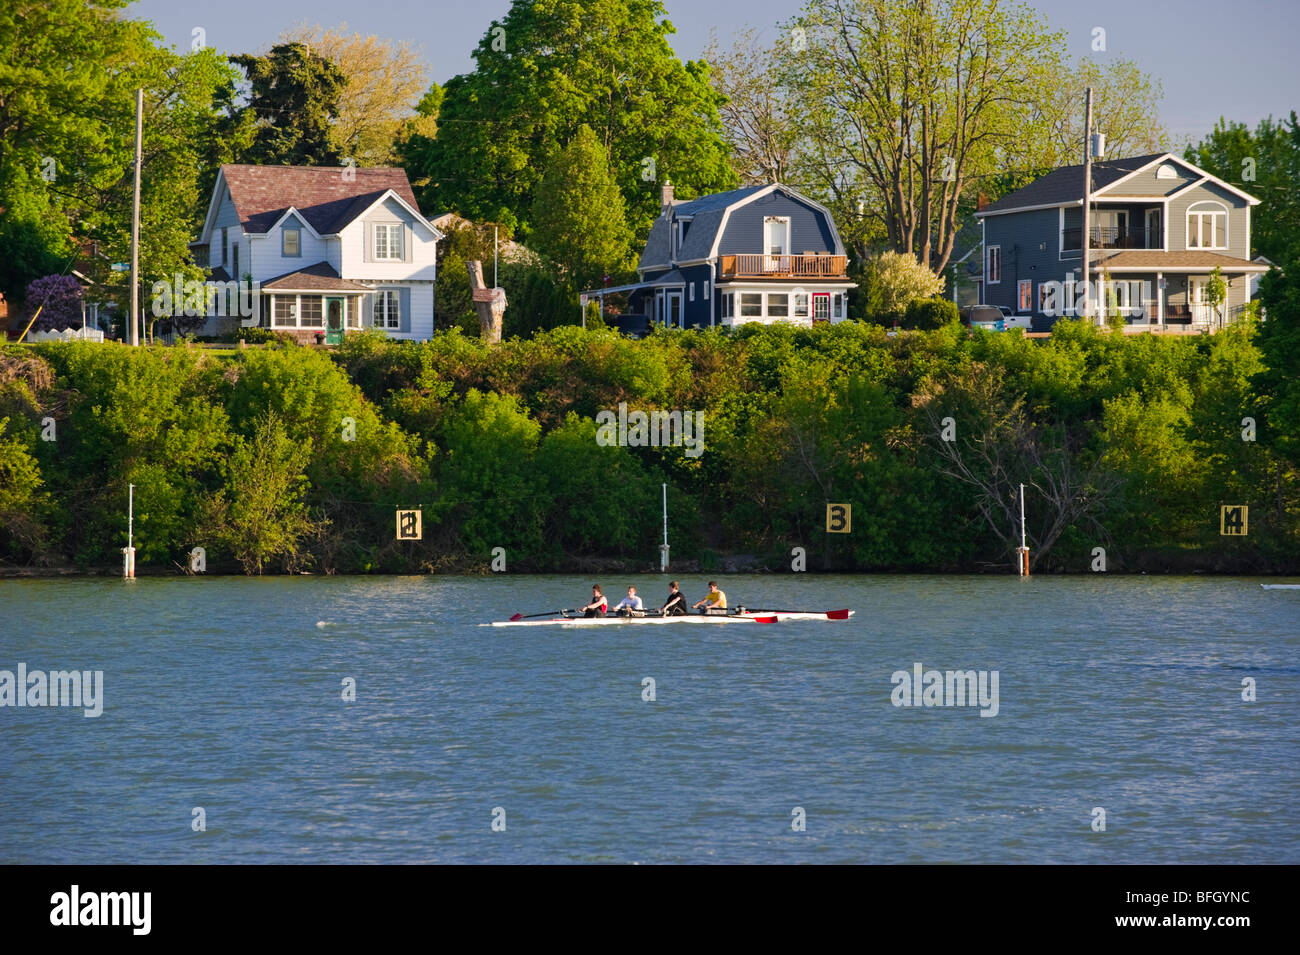 Rowers on Canadian Henley Regatta course on Martindale Pond, Port Dalhousie in St. Catharines, Ontario, Canada. - Stock Image